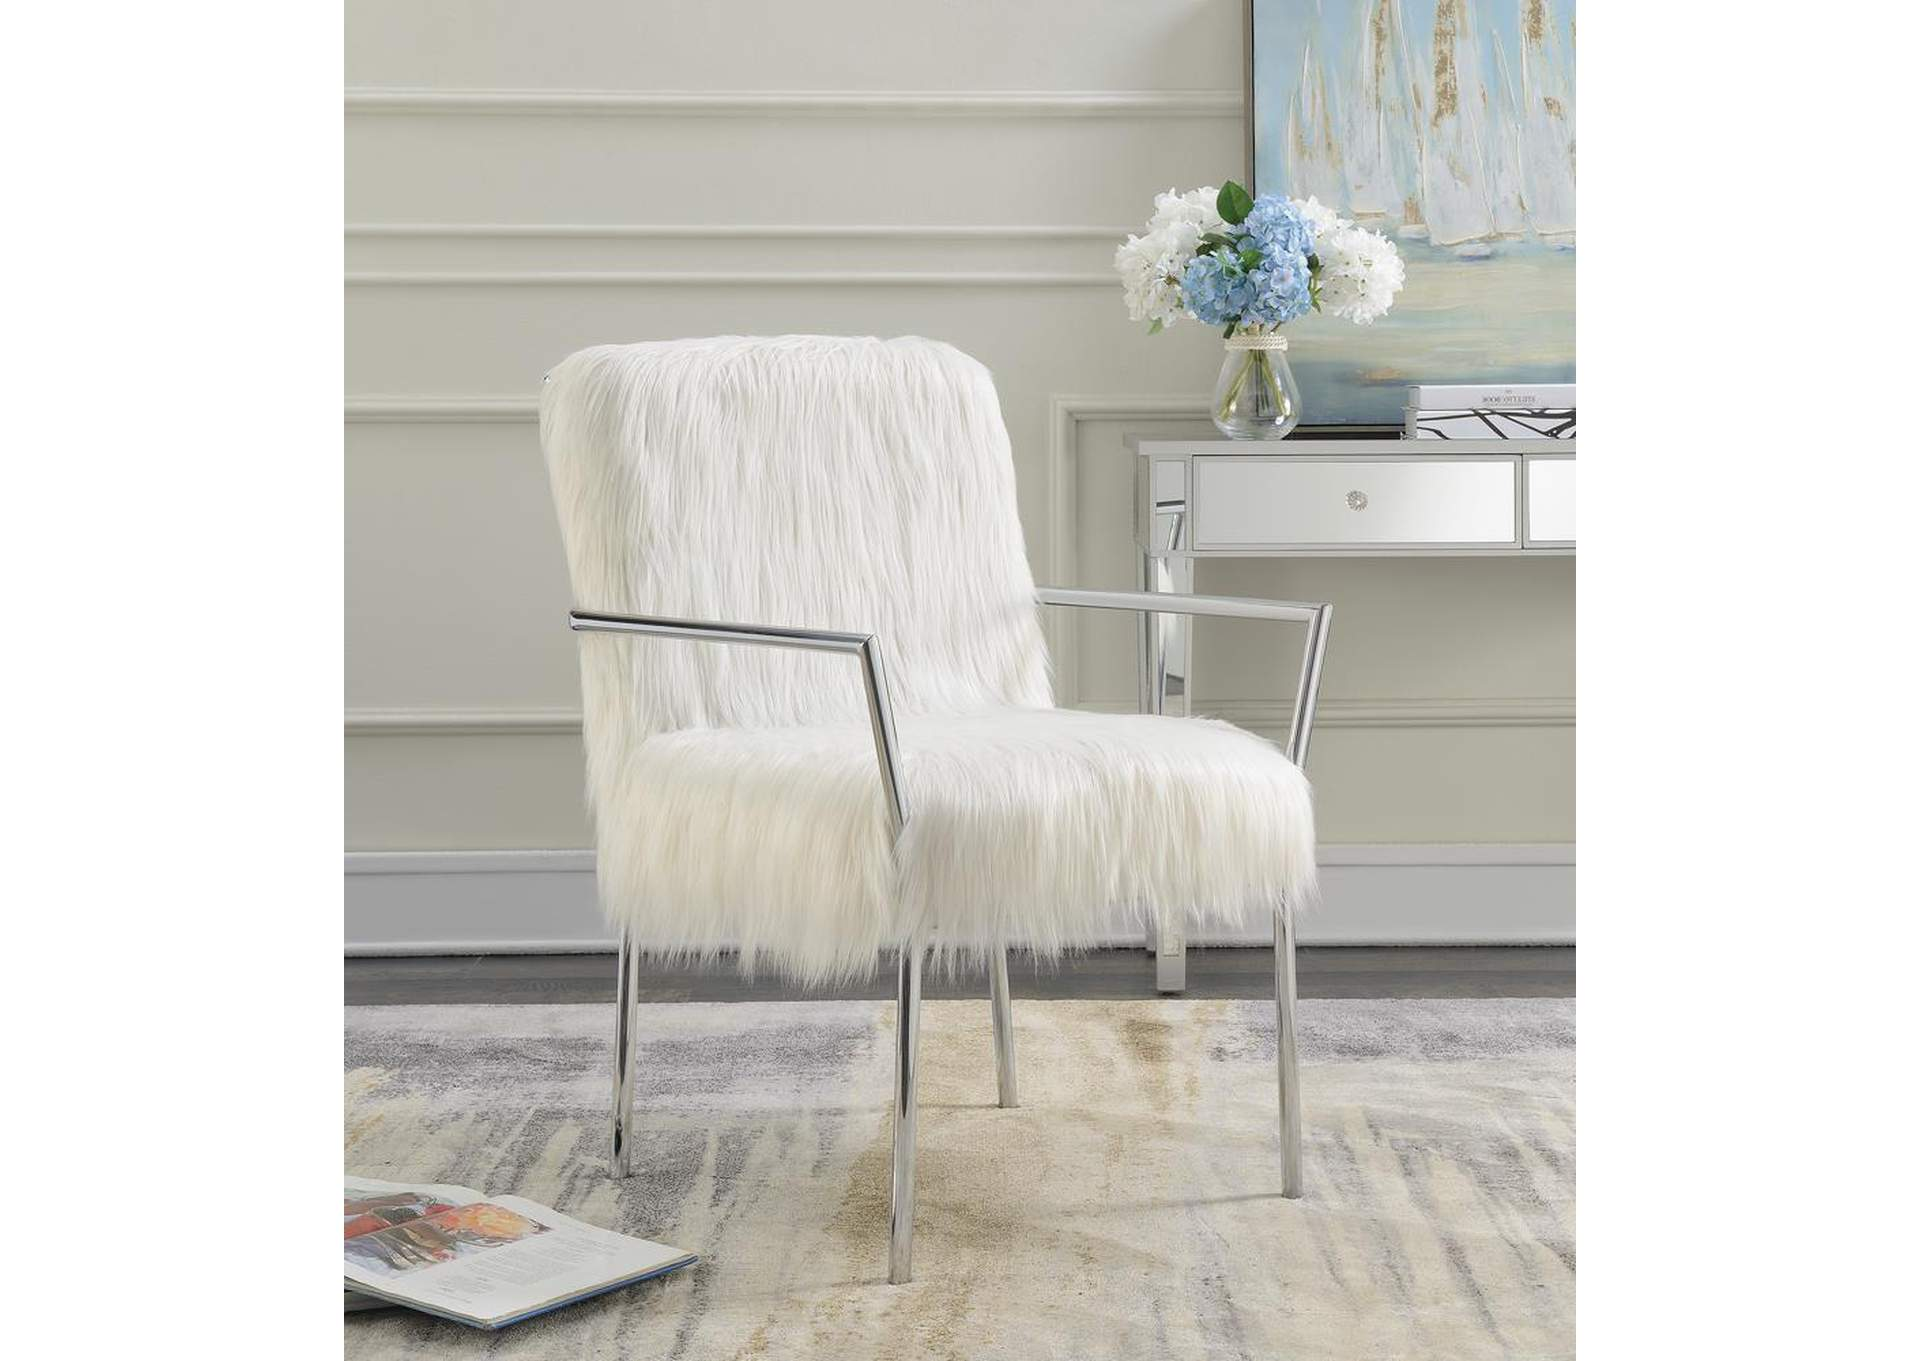 Awesome Cohens Furniture New Castle De White Fuzzy Accent Chair Ibusinesslaw Wood Chair Design Ideas Ibusinesslaworg